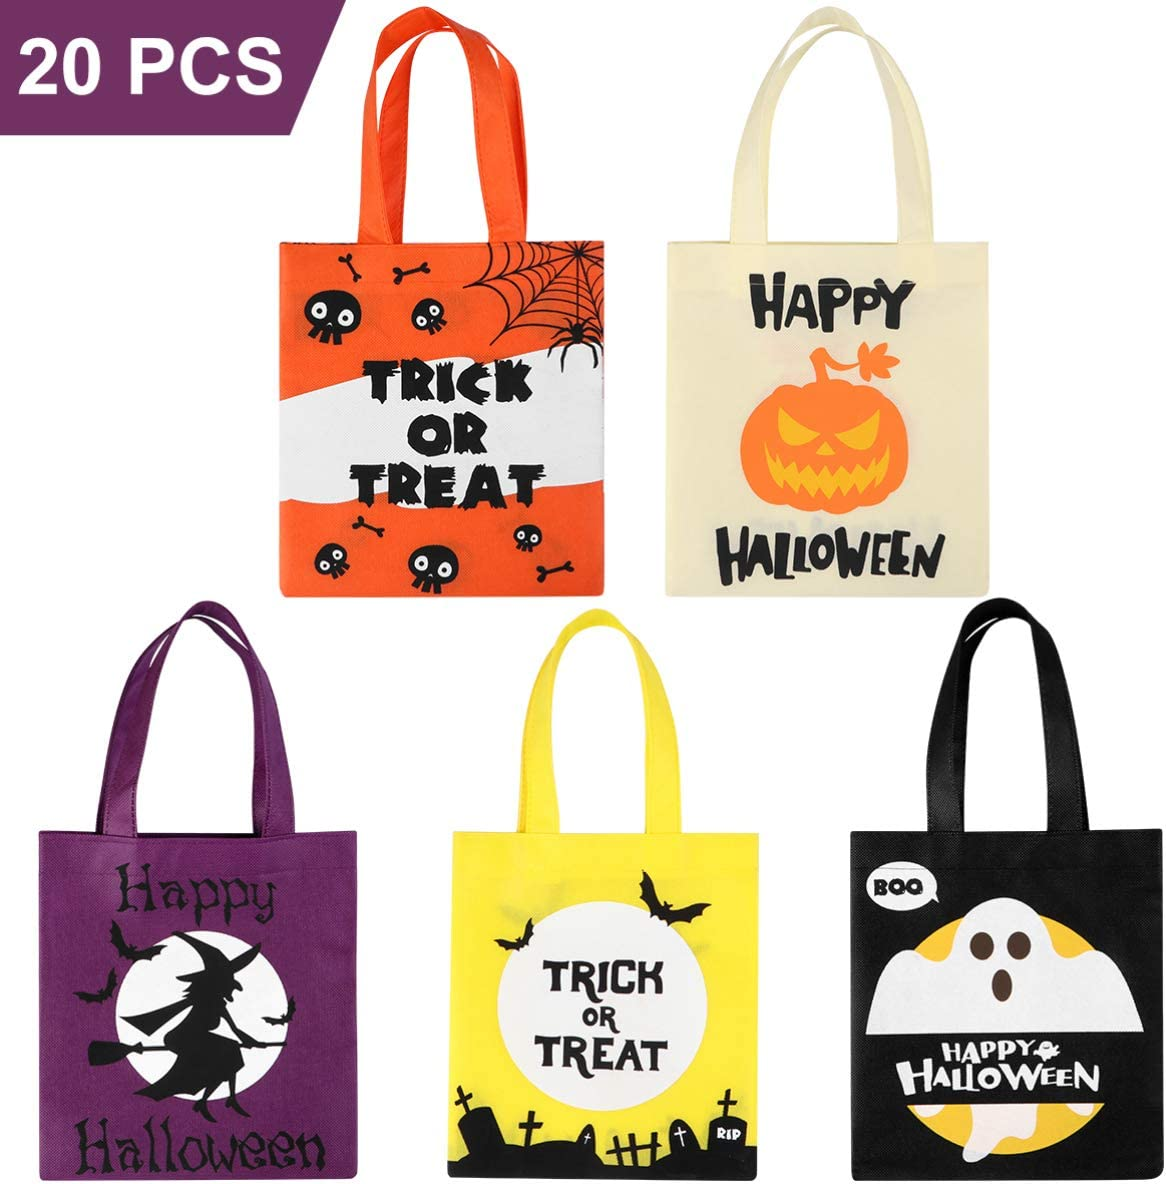 Halloween Trick or Treat Bags, Reusable Halloween Tote Bags for Kids for Halloween Party Favors 20PCS (5 Colors)